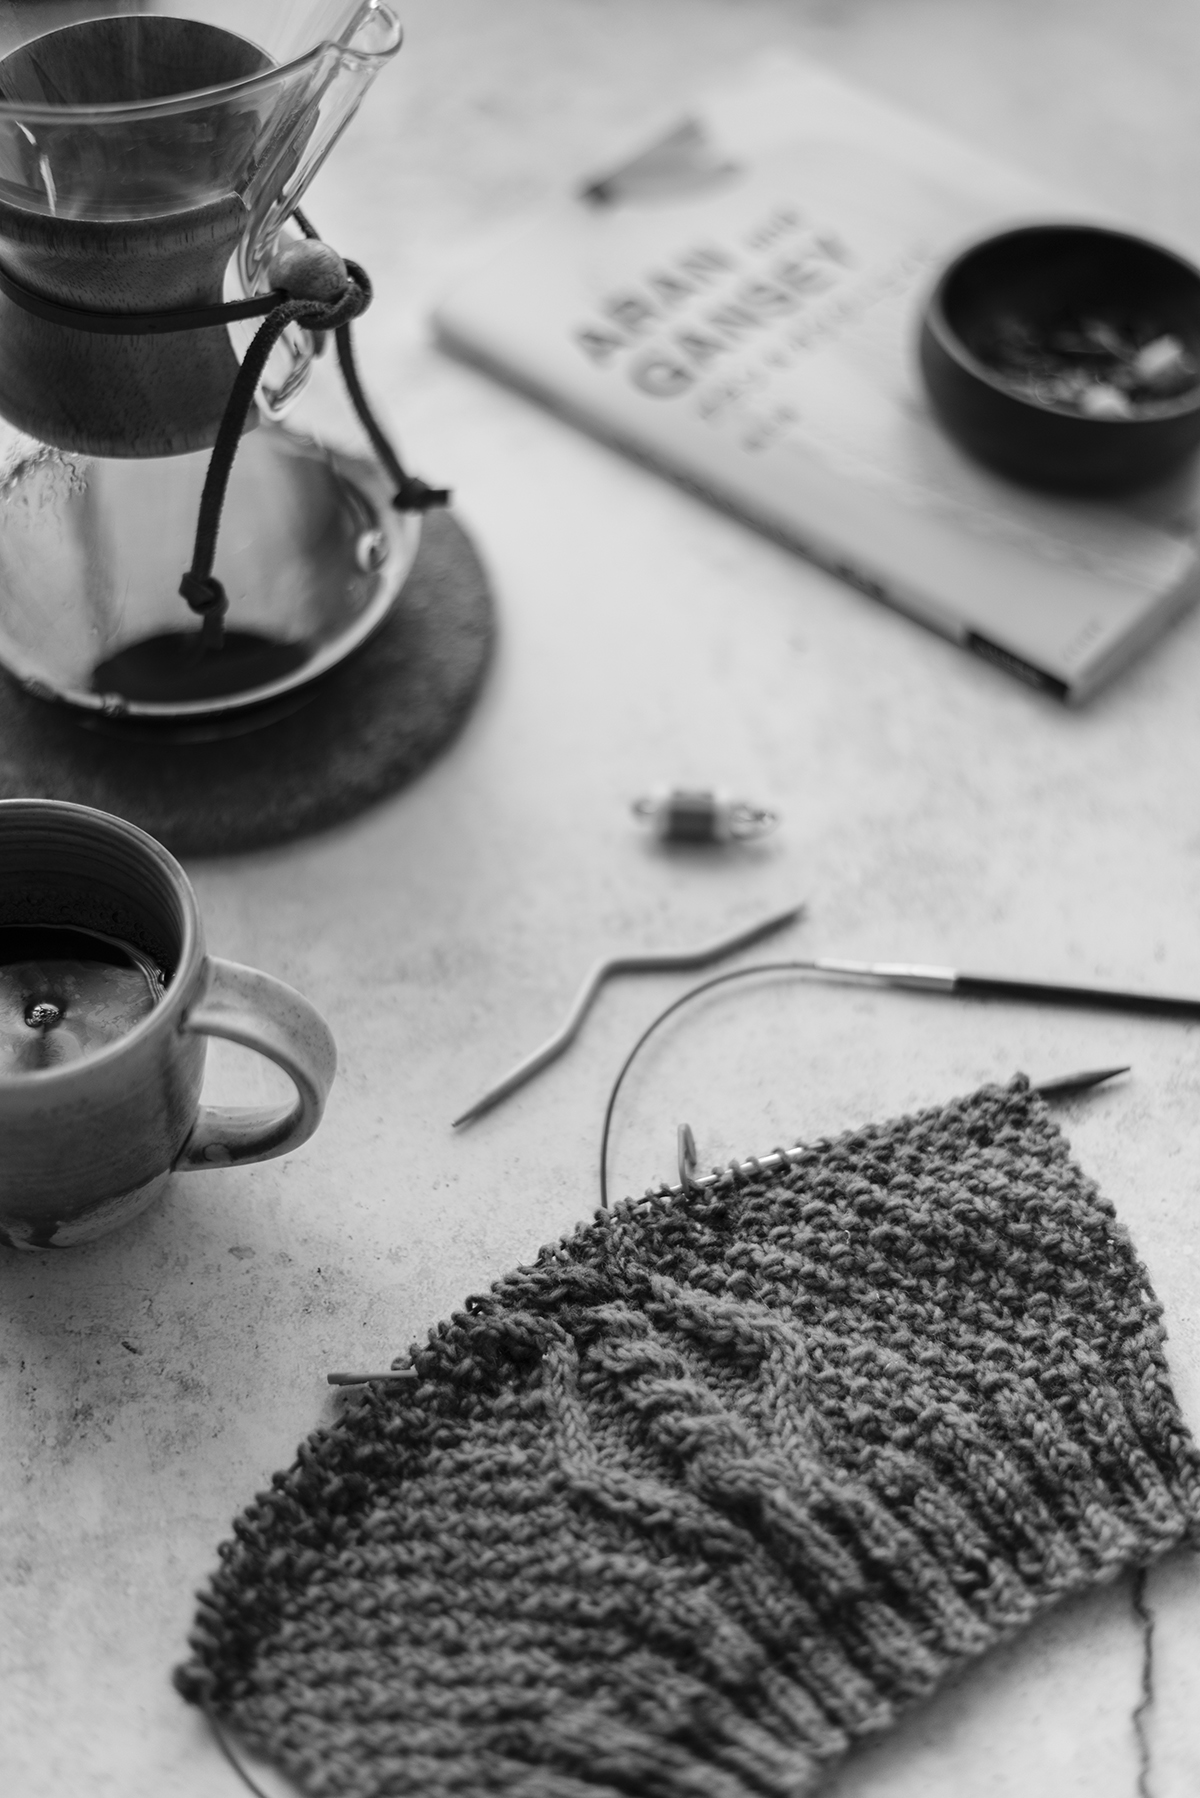 wip-black and white photograph-knitting-and-coffee-still-patricia-martins-yellowish-2019